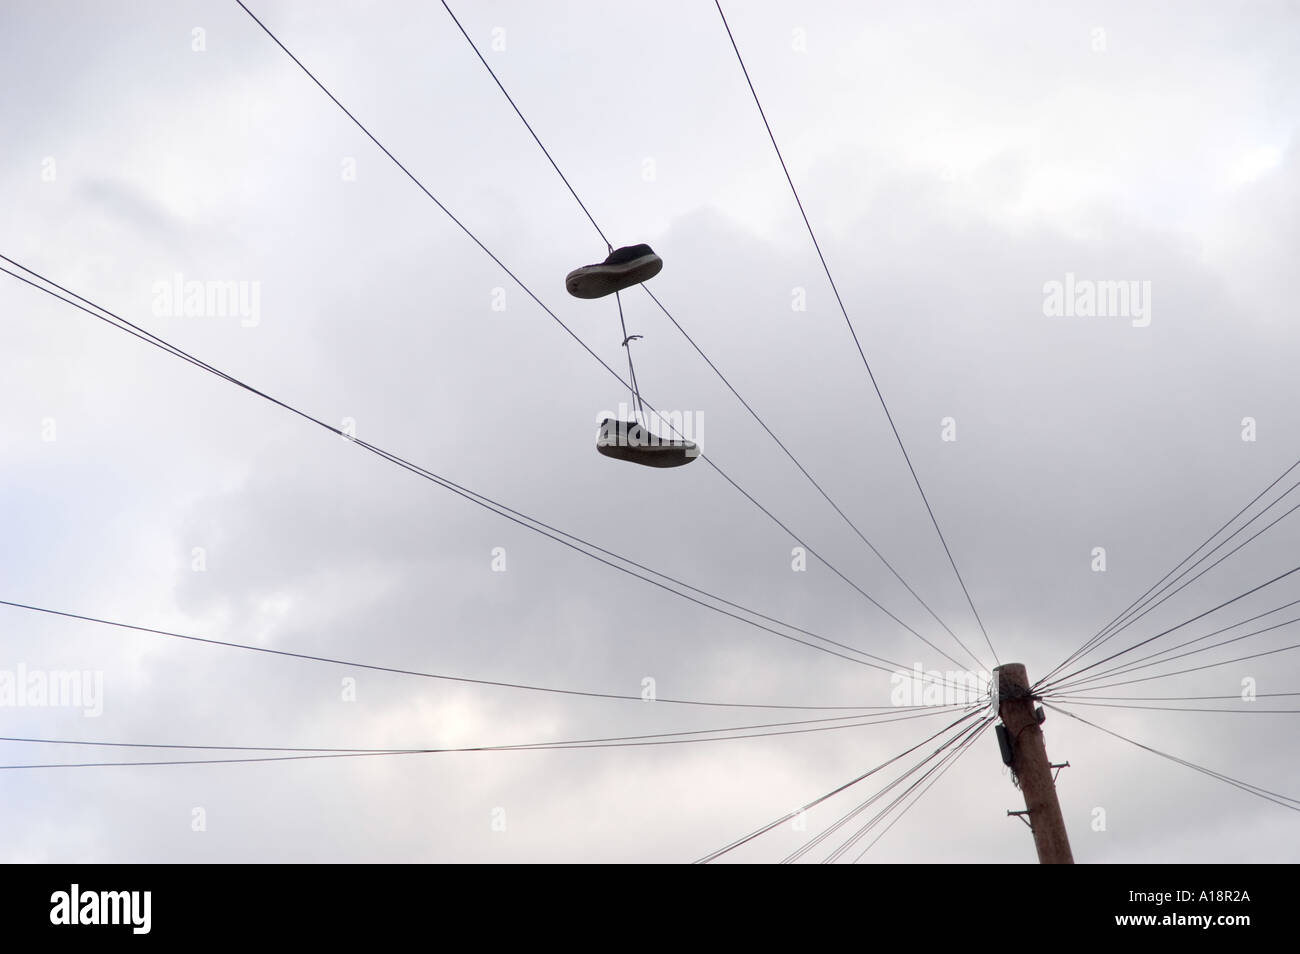 Trainers hanging from a telephone wire Stock Photo: 3323689 - Alamy